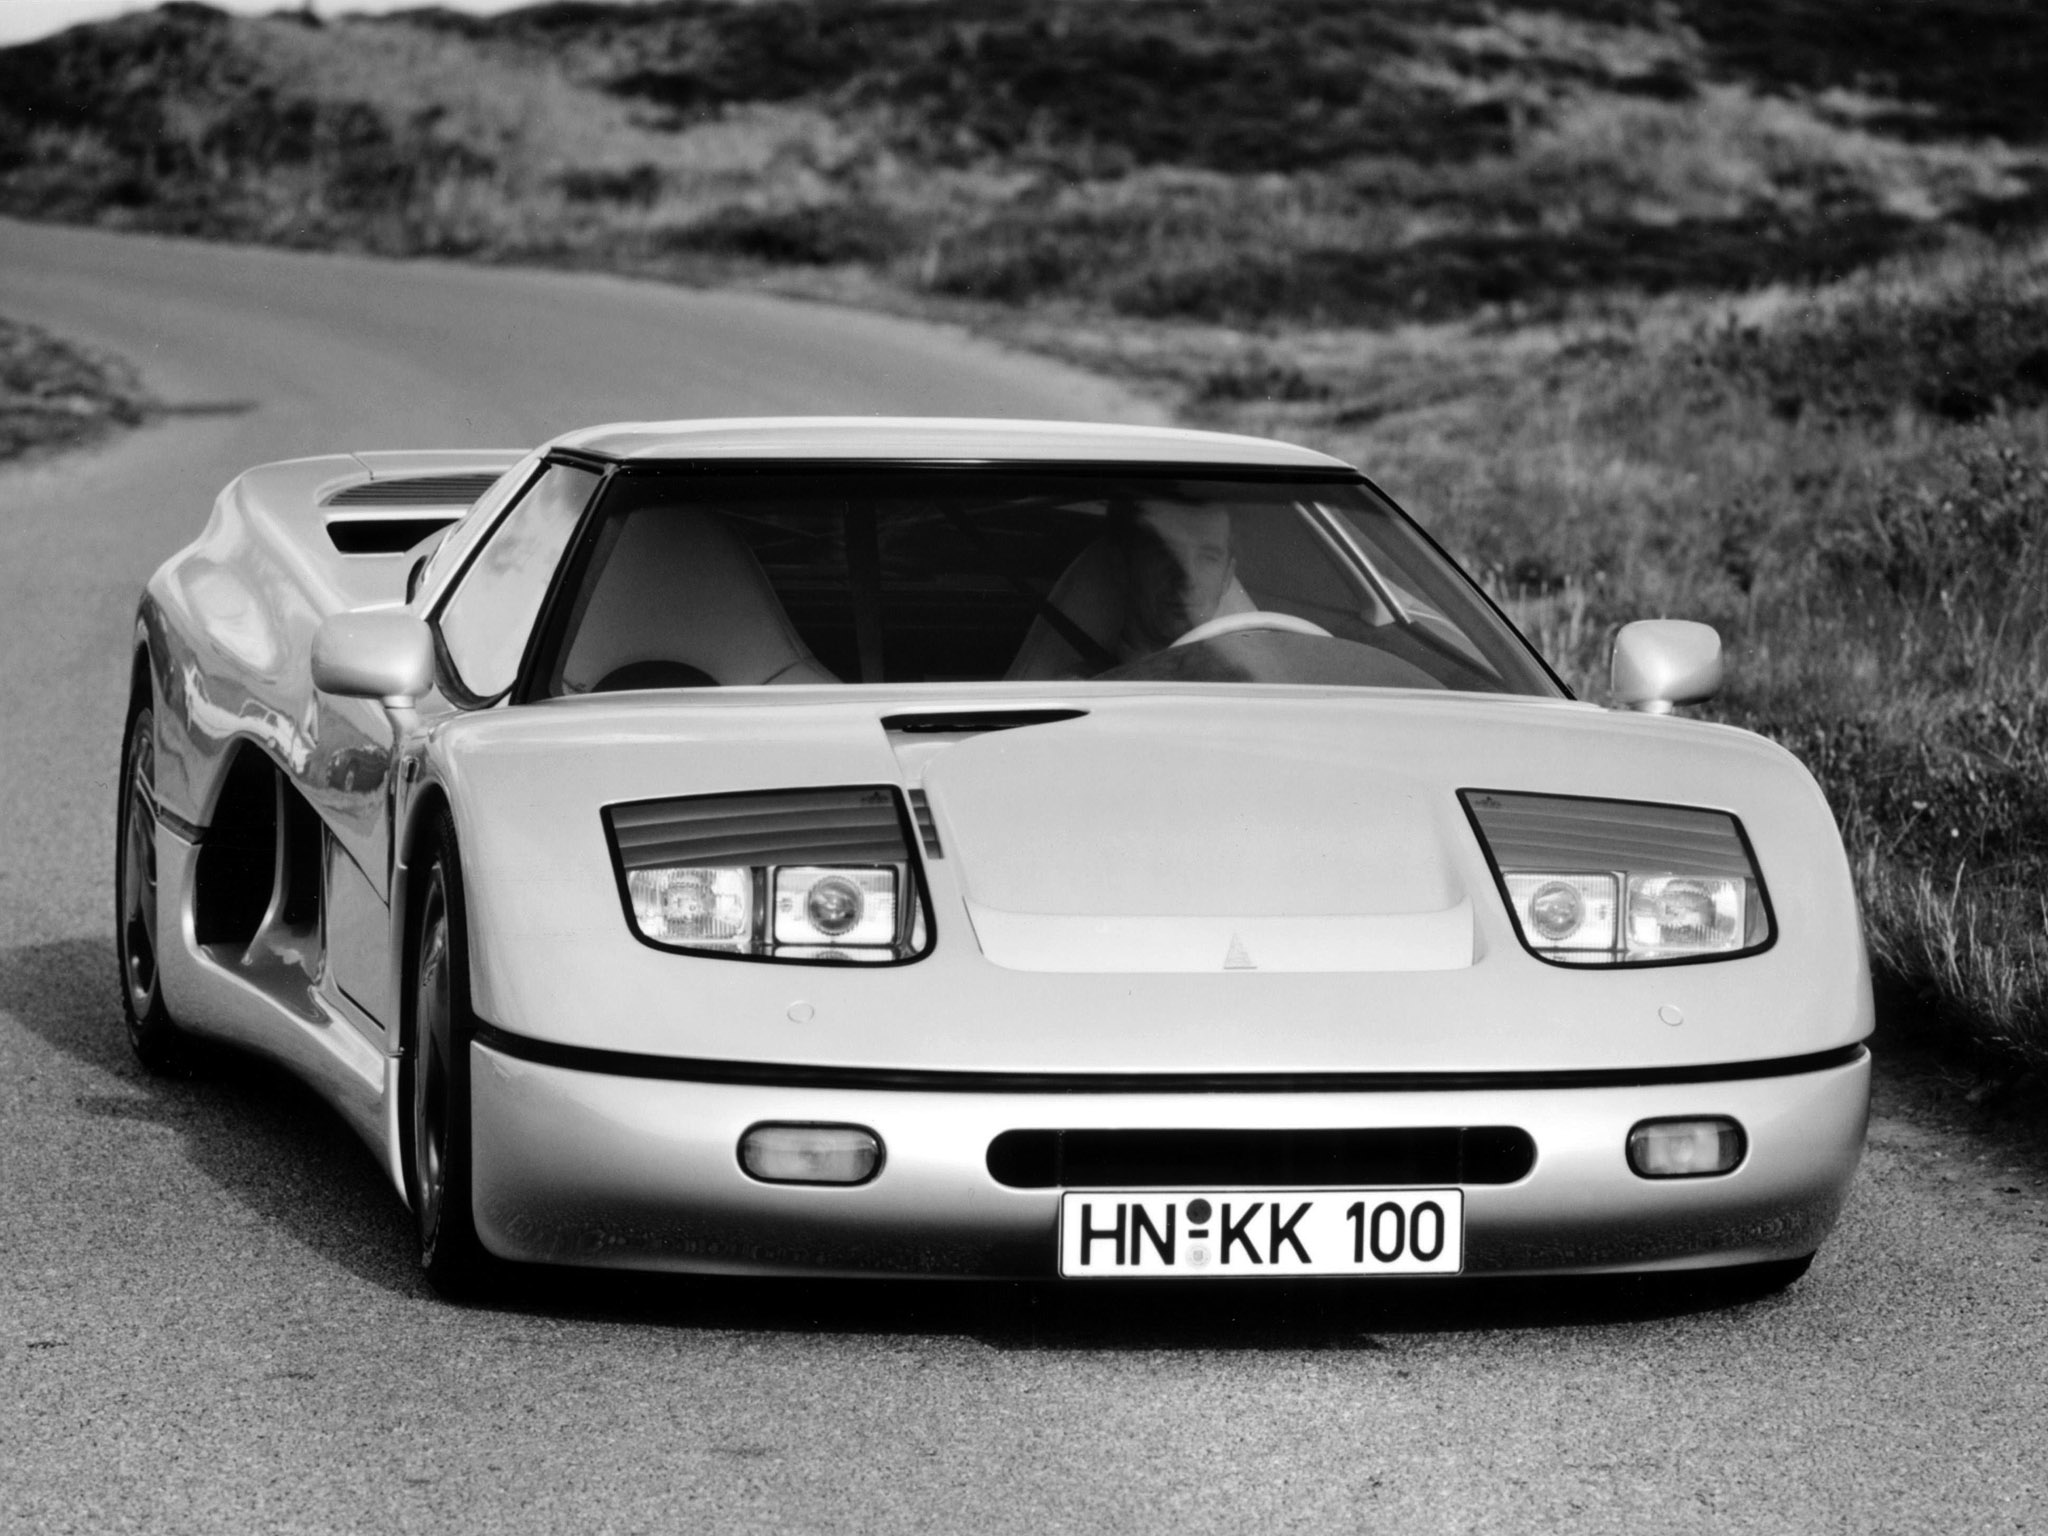 So for my score of 522. Speiss TC 522 1992 5.7 litre V8 twin-turbo 0-60 mph  4 seconds. The Spiess TC 522 was a supercar prototype from 1992.